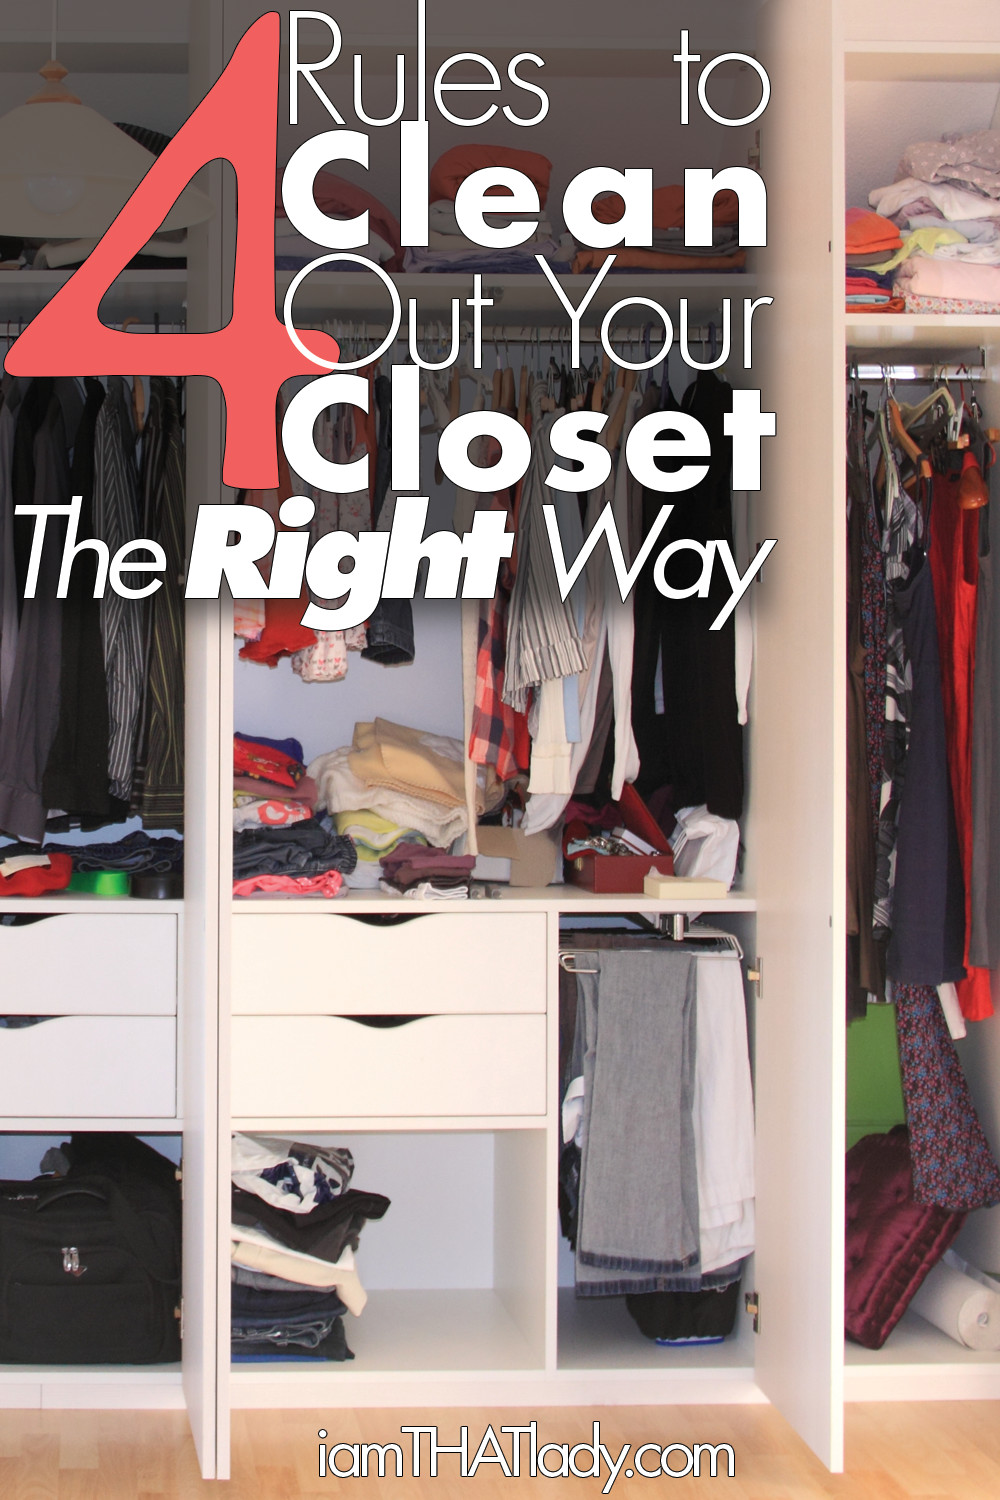 1 Make Four Piles The Great Closet Clean Out Is Your: 4 Rules To Clean Out Your Closet The RIGHT WAY